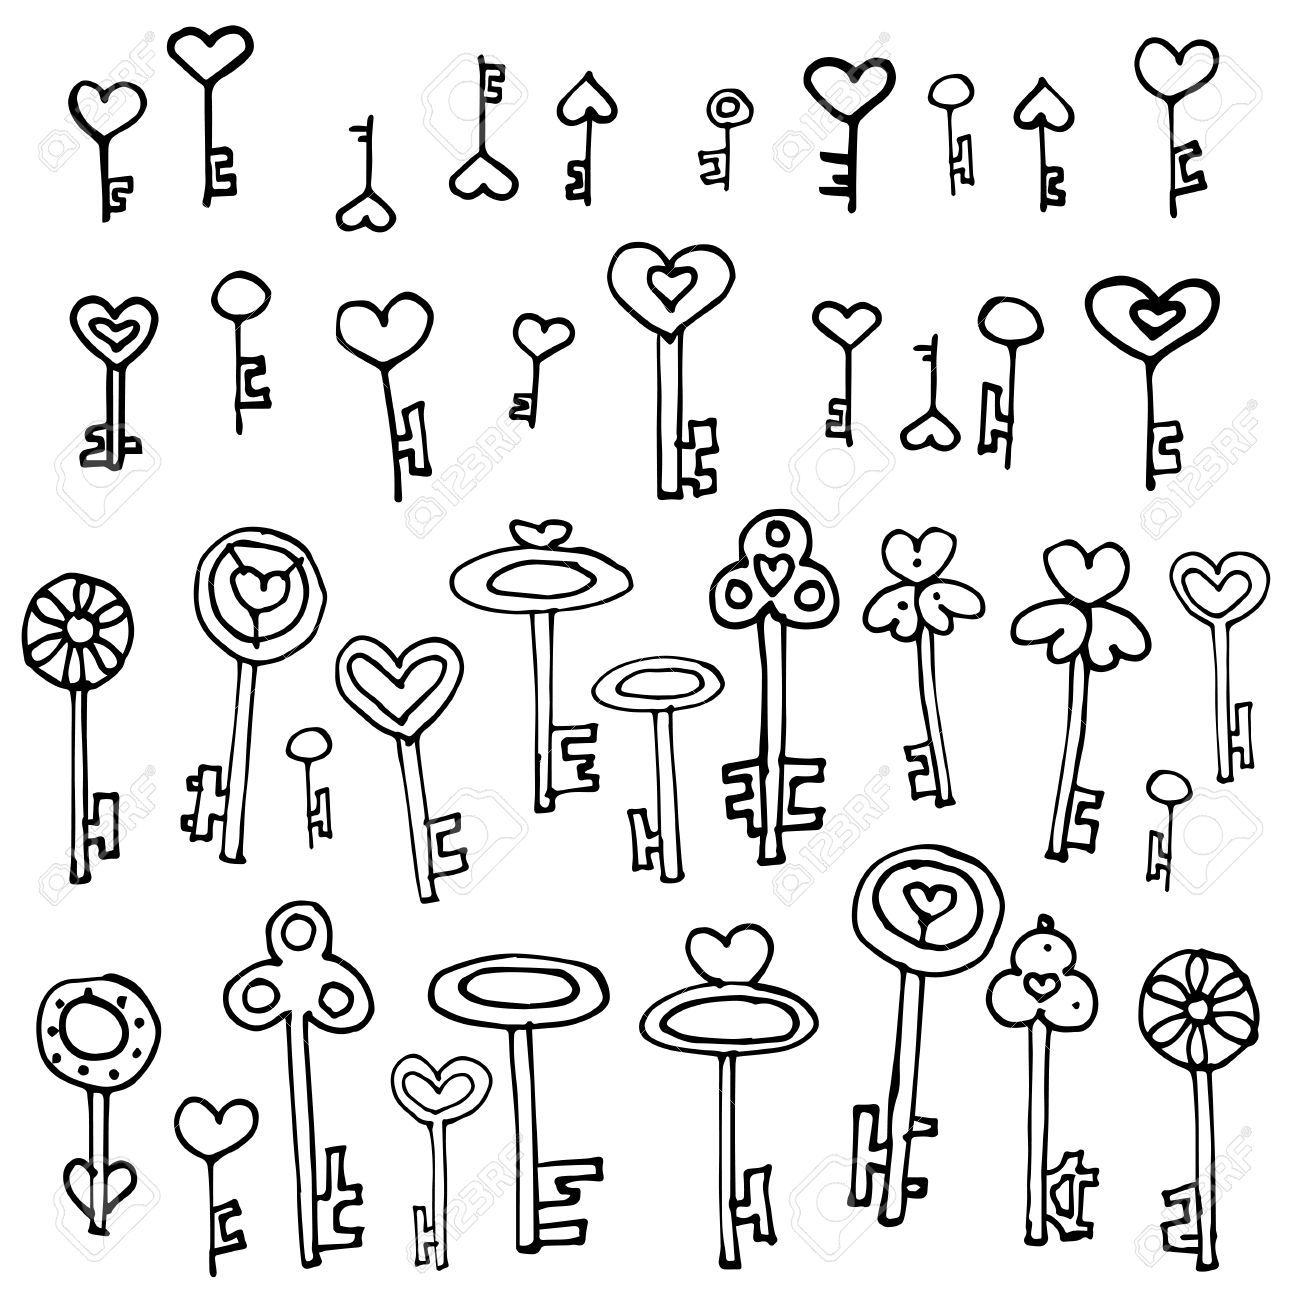 Heart Key Drawing At Getdrawings Free For Personal Use Heart